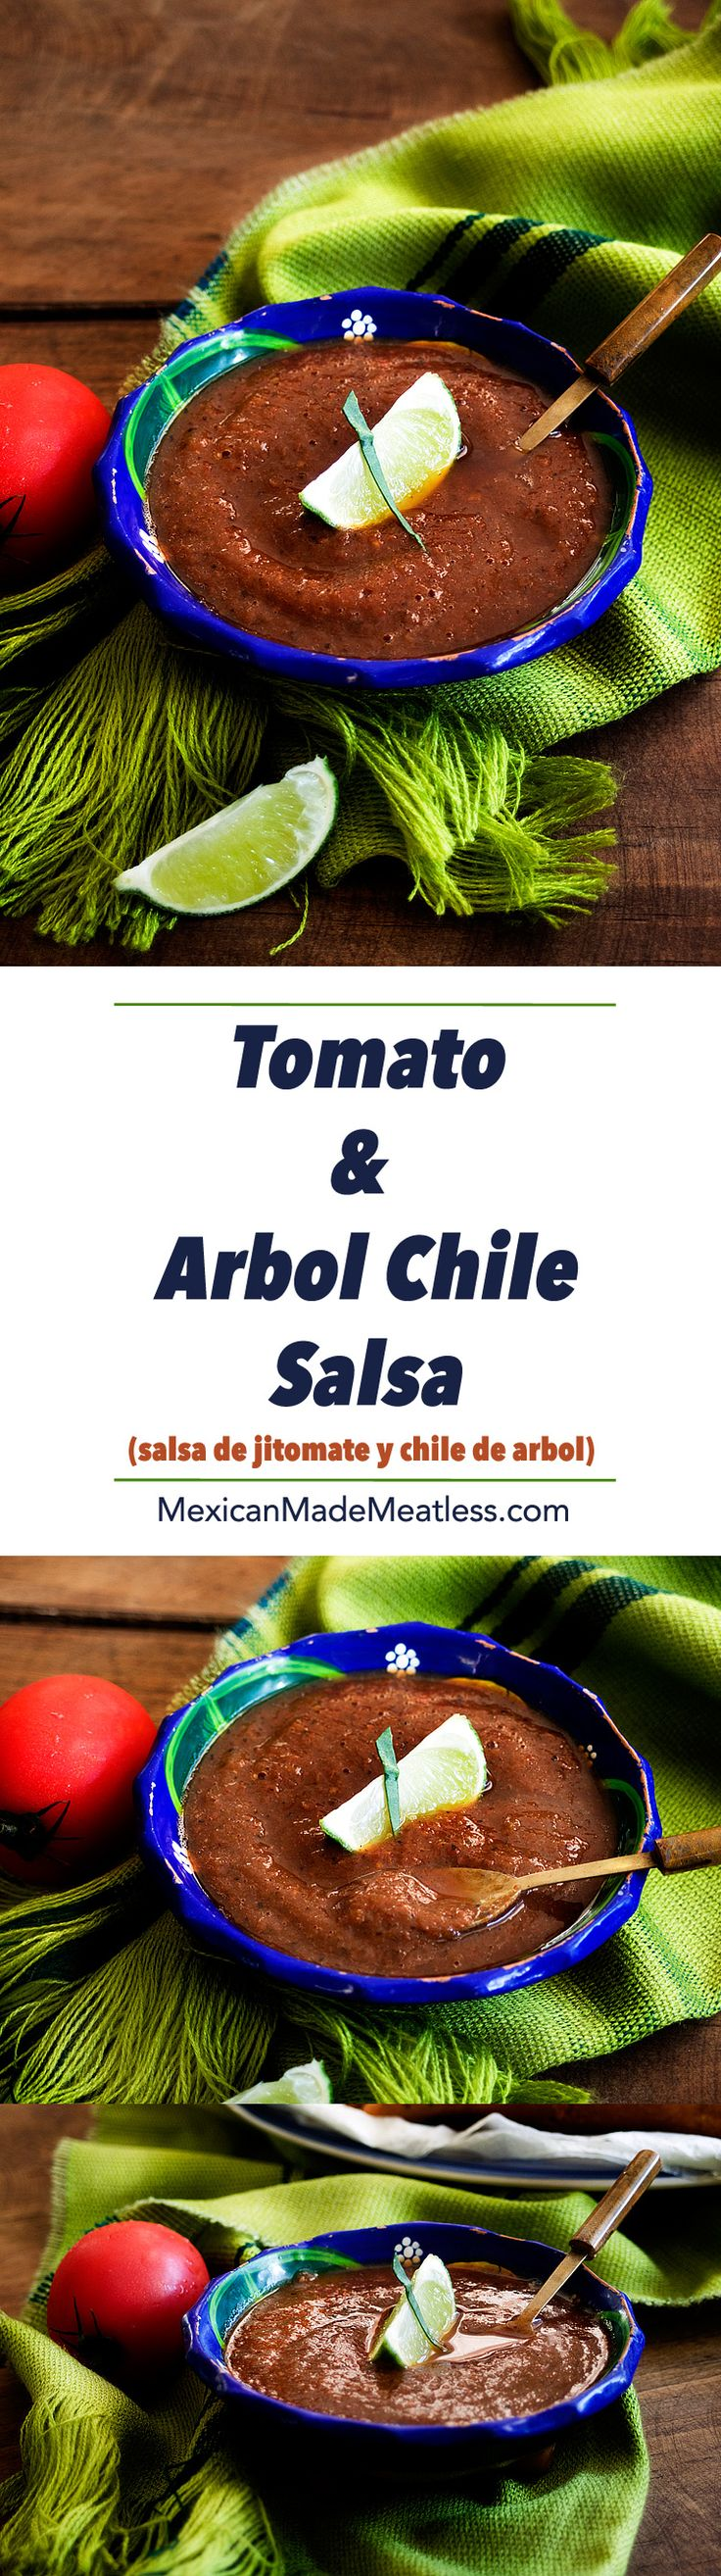 Salsa roja made with Tomatoes and Chiles de Arbol: Perfect for topping, dipping or cooking with! | #vegan #salsaroja #salsas #chilesdearbol #chipsandsalsa